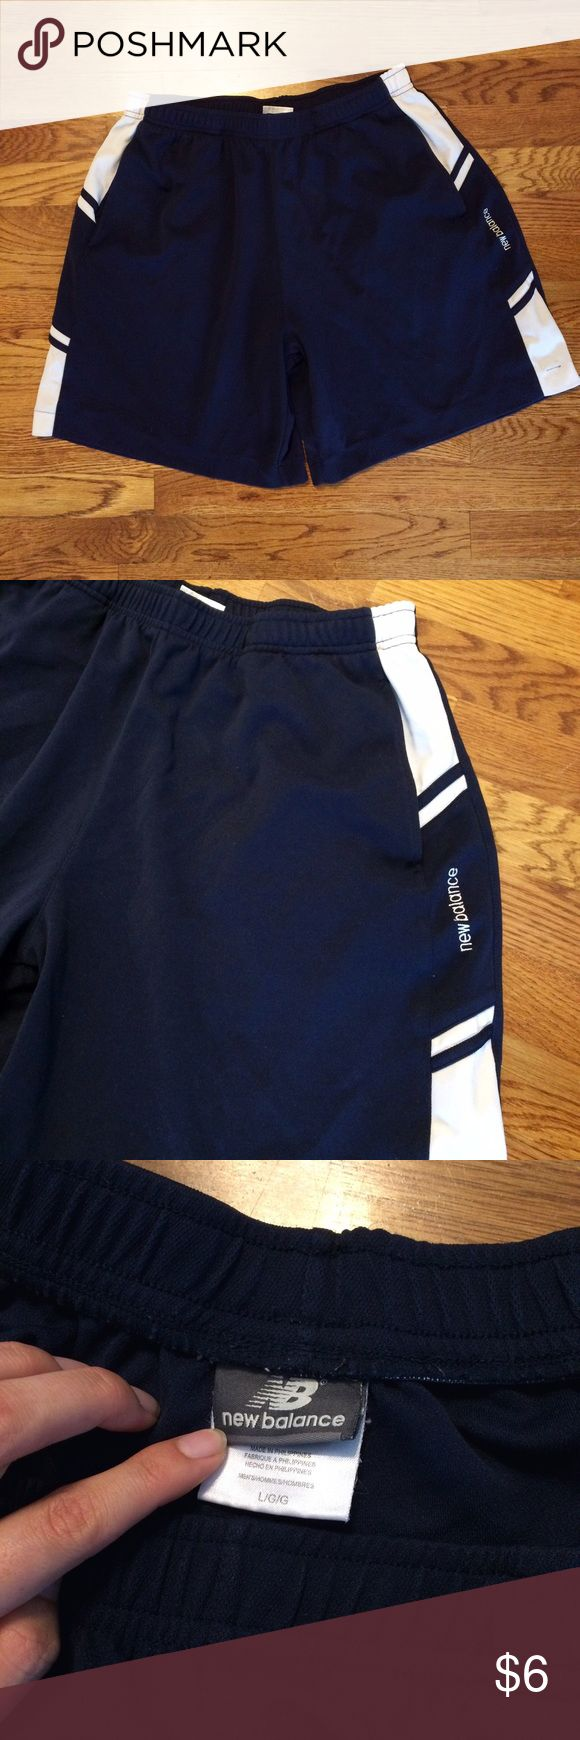 New Balance Navy and White Sport Shorts Mens activewear shorts, size L, good condition New Balance Shorts Athletic